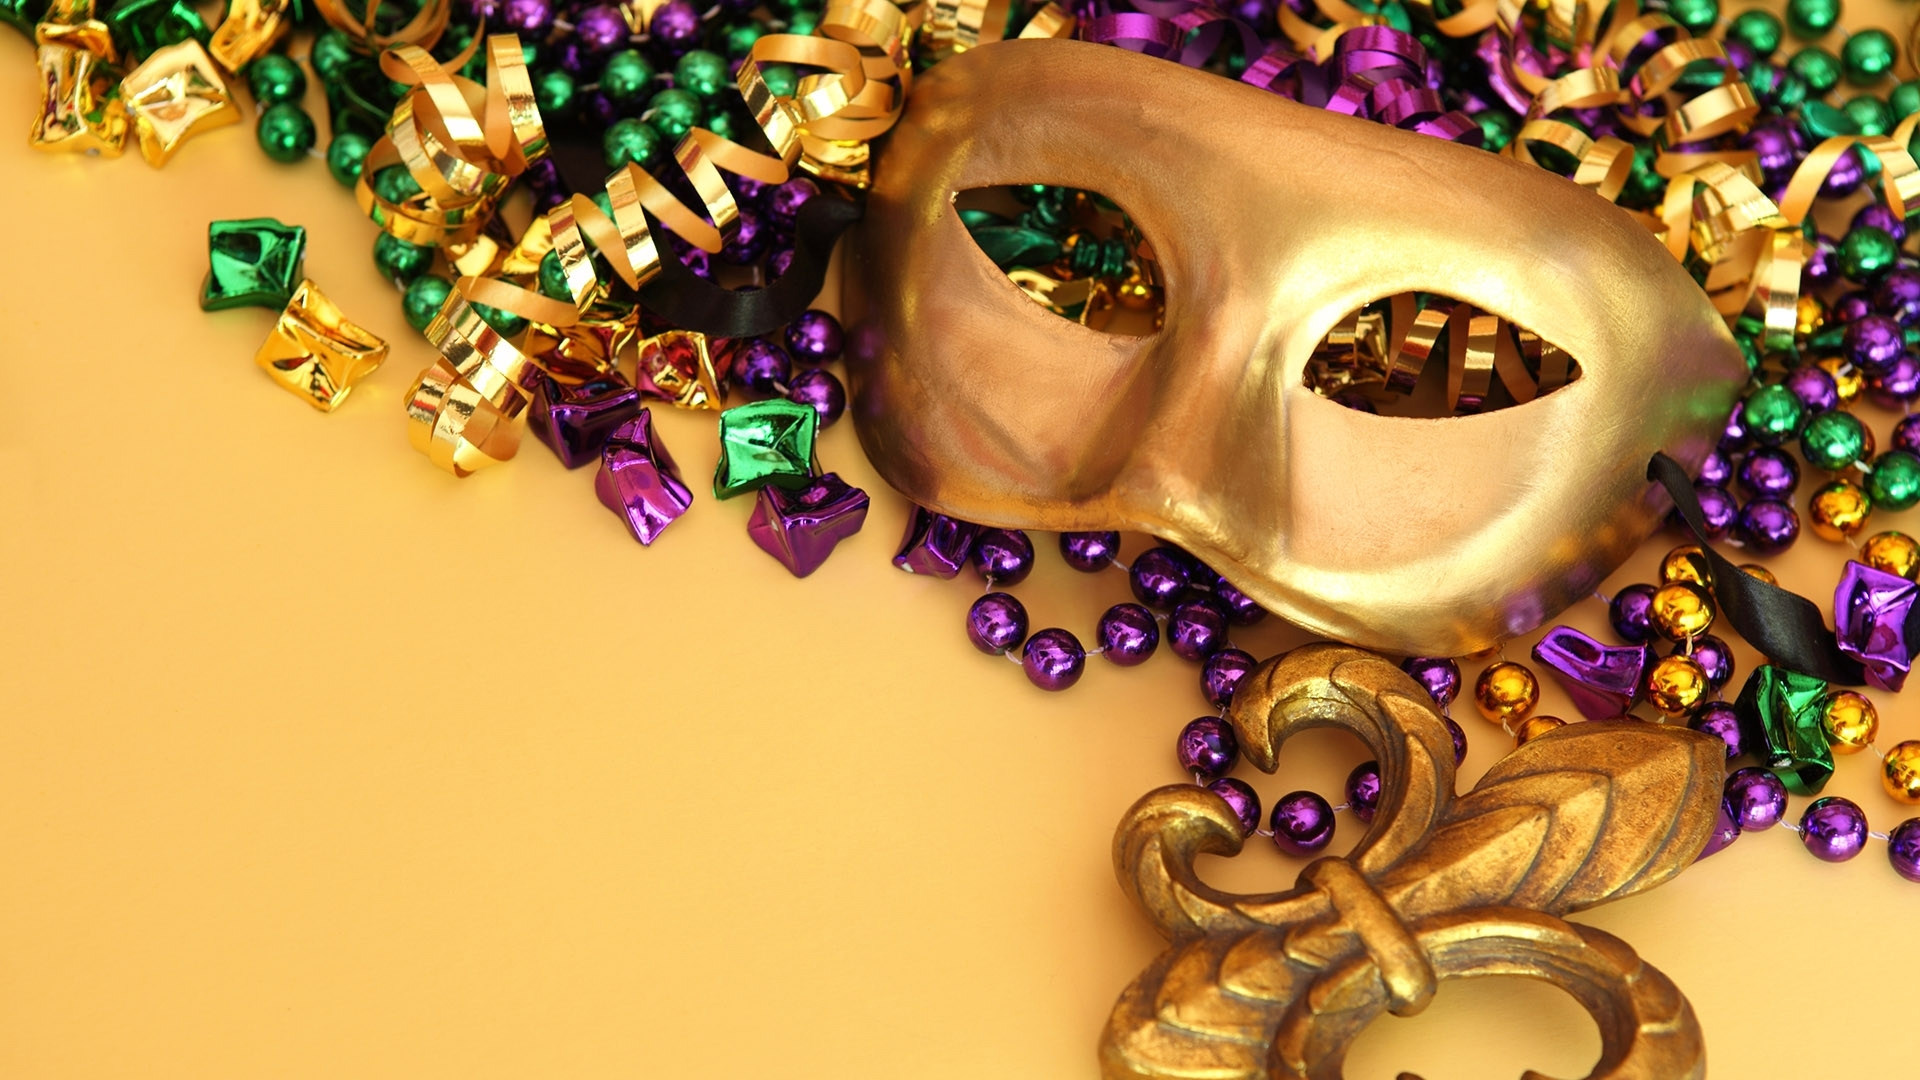 mardi gras wallpapers | hd wallpapers | id #10886